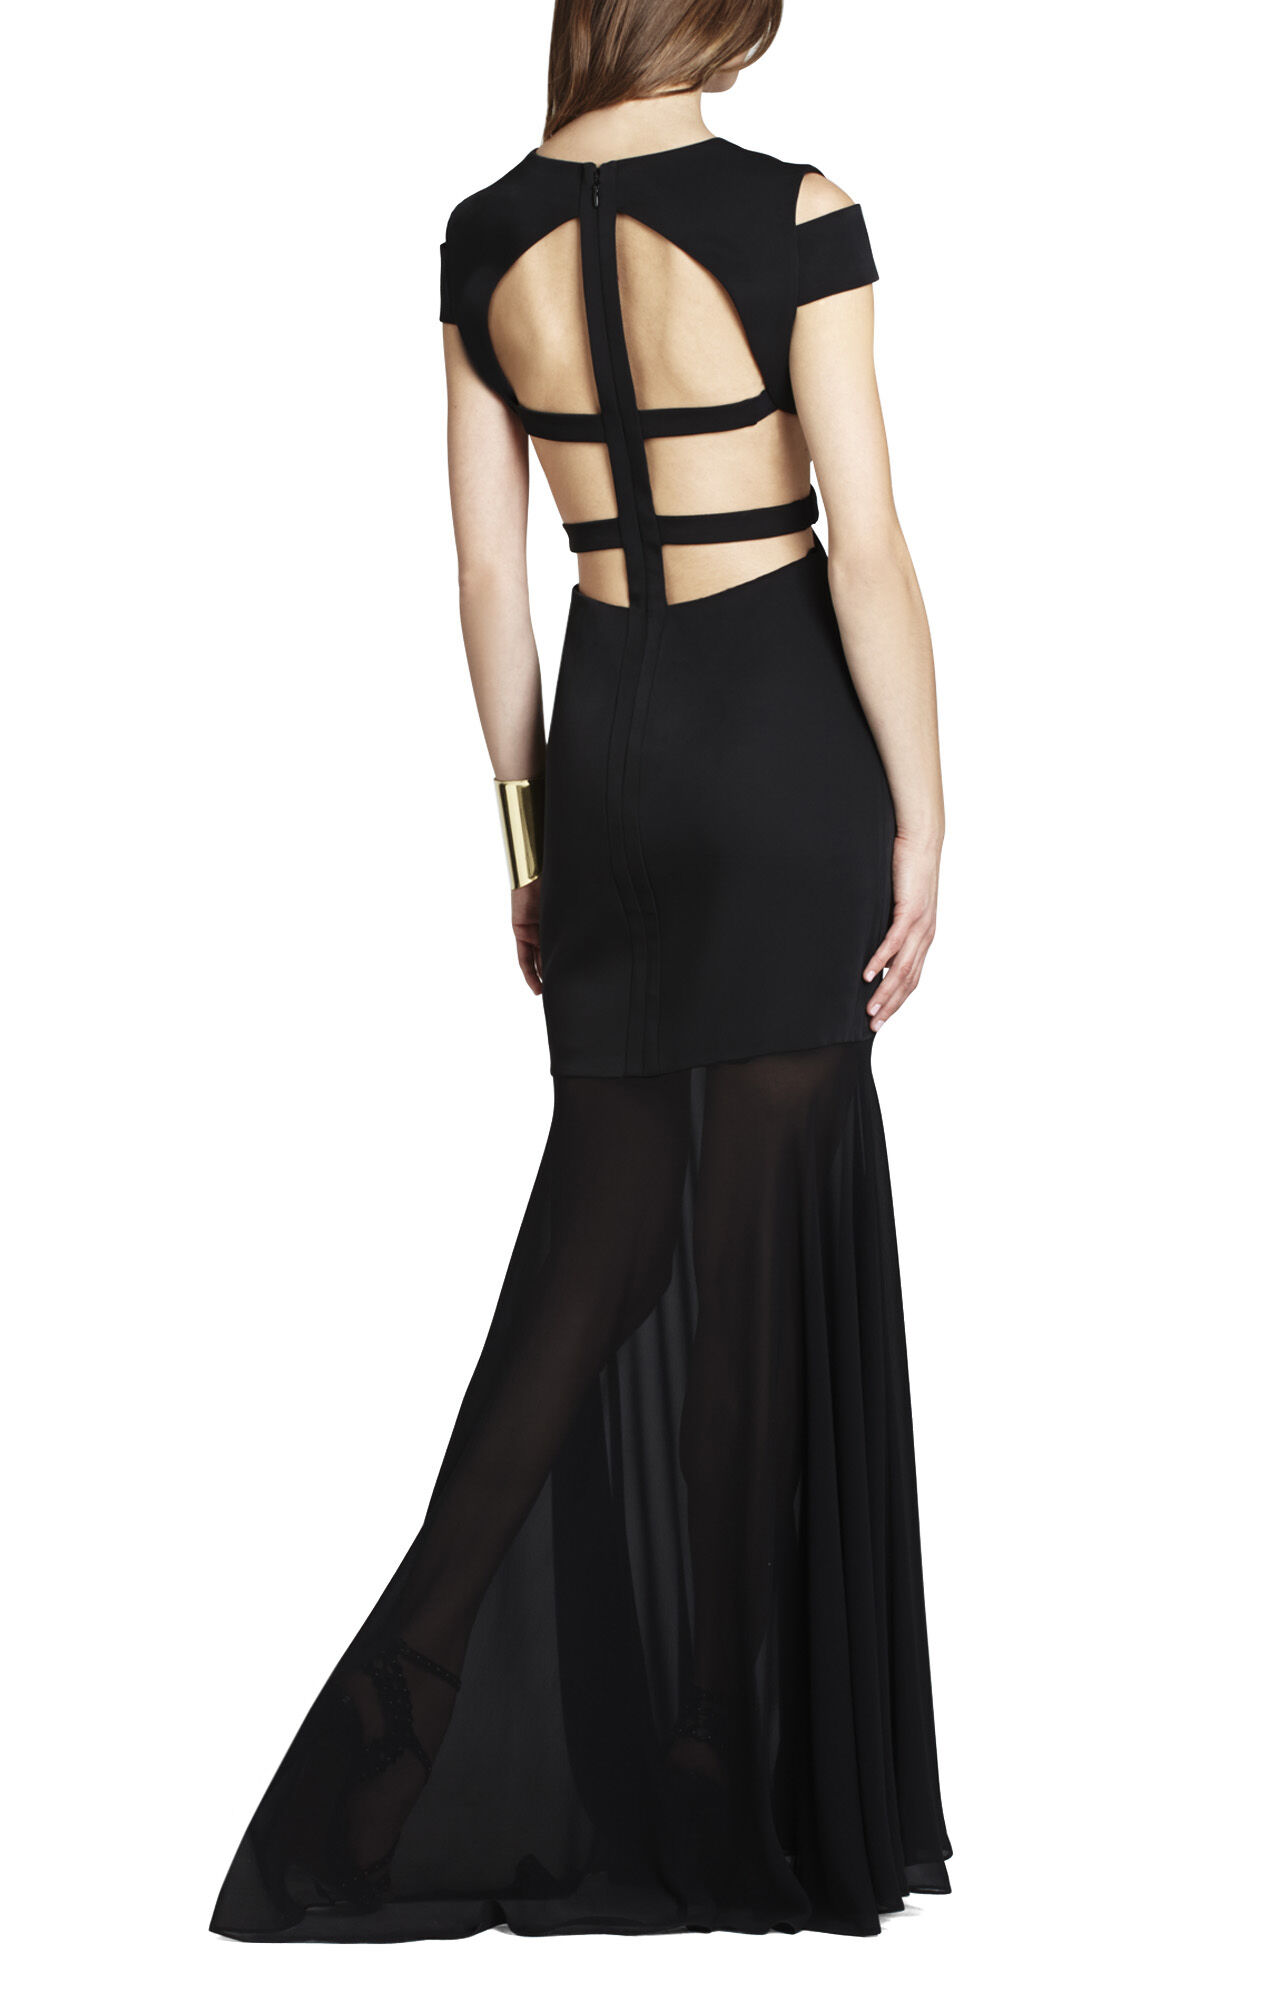 BCBG Black Cut Out Dress